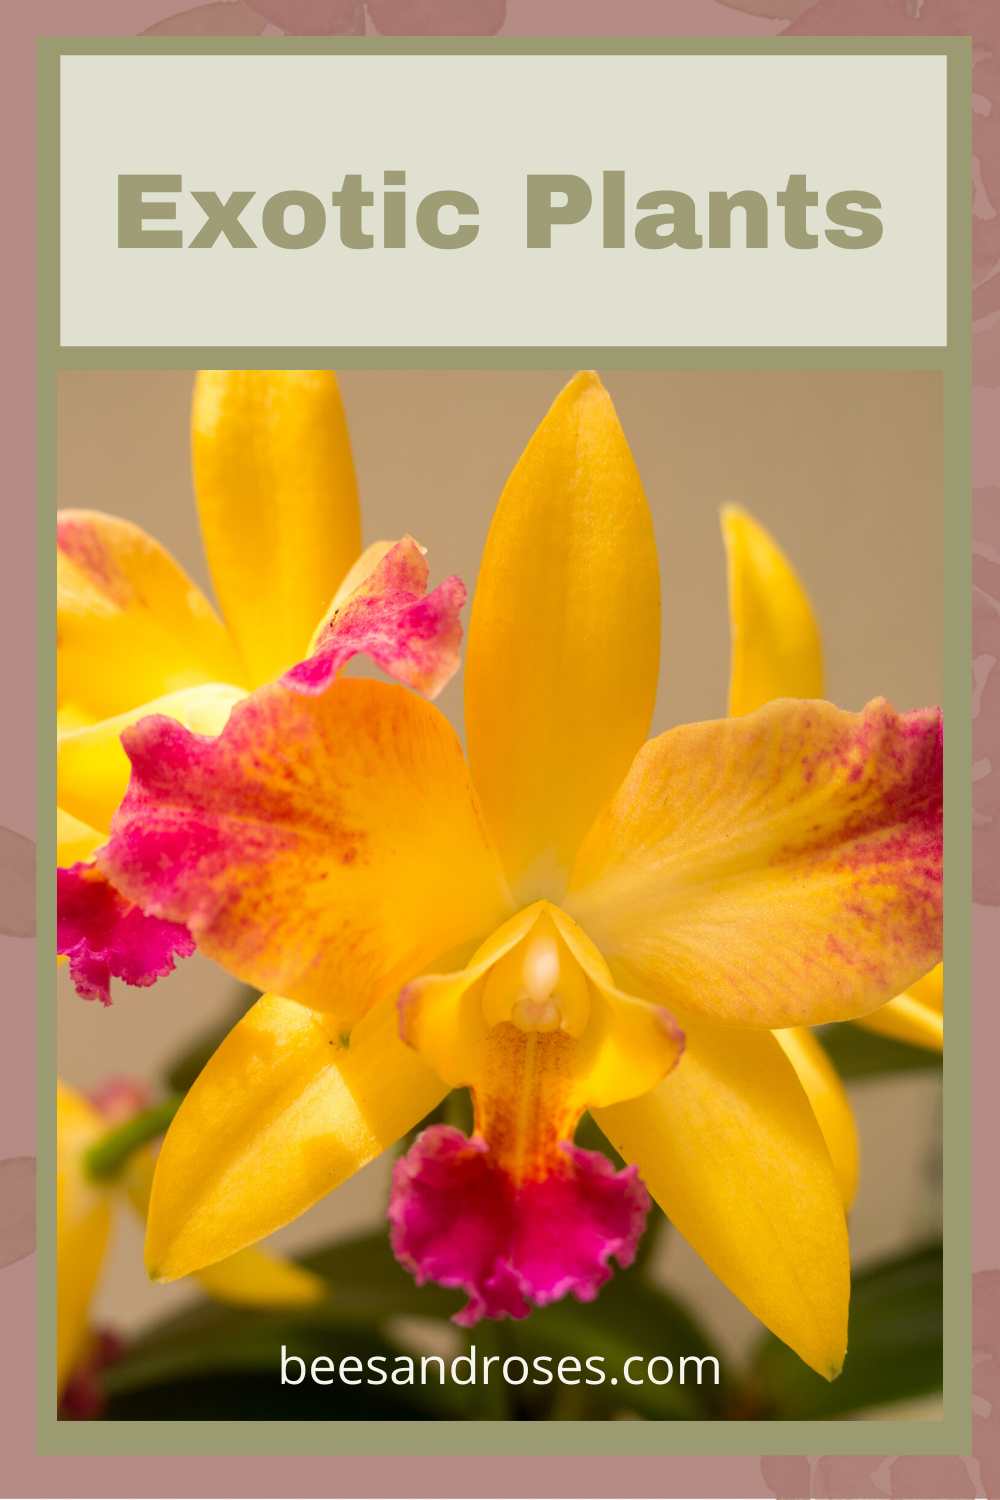 Whenever I visit a tropical location, I am in awe of the gorgeous plants vibrant flowers. Since I live in a dry climate, I used to think I could not get them to grow in my garden. After doing some research, I learned I could make them grow. Read this post to learn which exotic plants you can grow. #exoticplants #tropicalplants #gardeningtips #beesandrosesblog